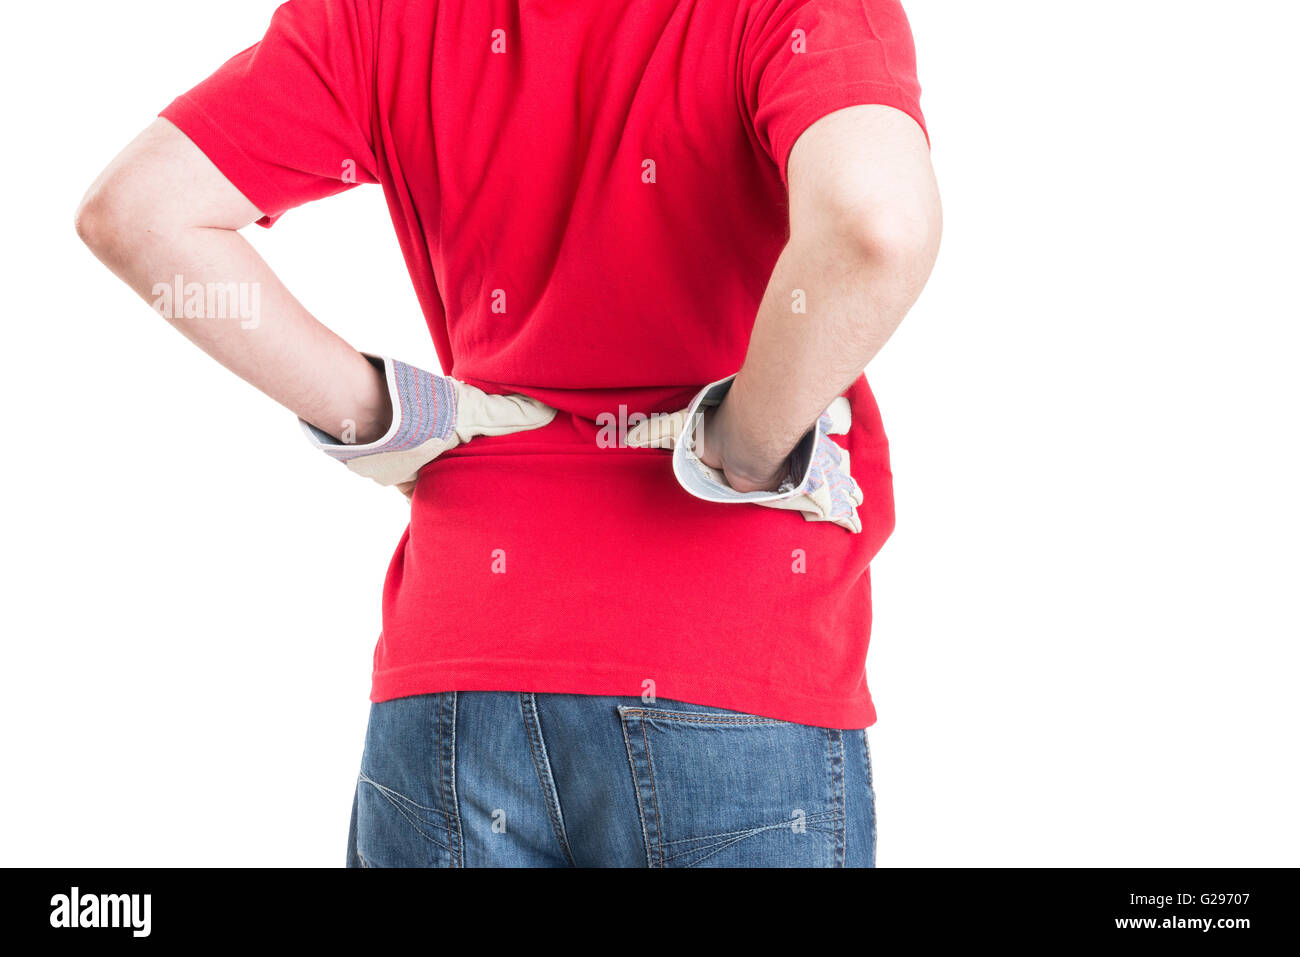 Builder feeling lower back pain. Lumbar problems after construction work. - Stock Image